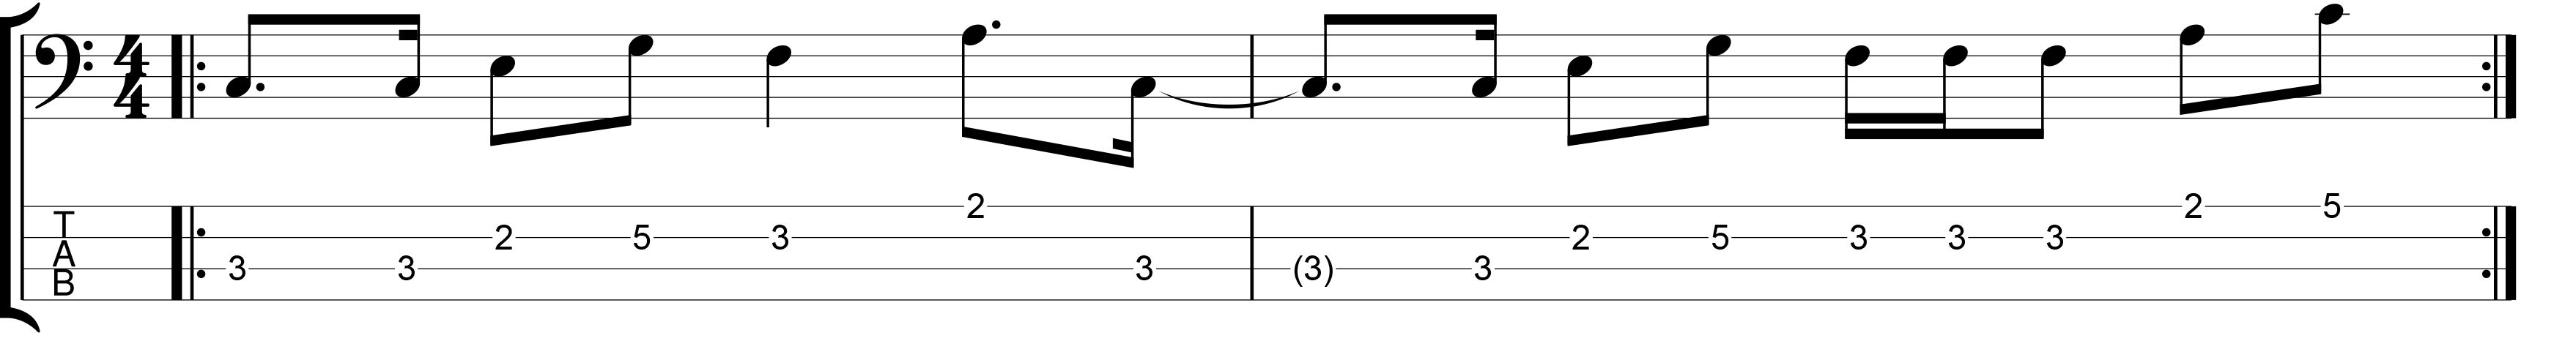 Bass line with a 16th note feel